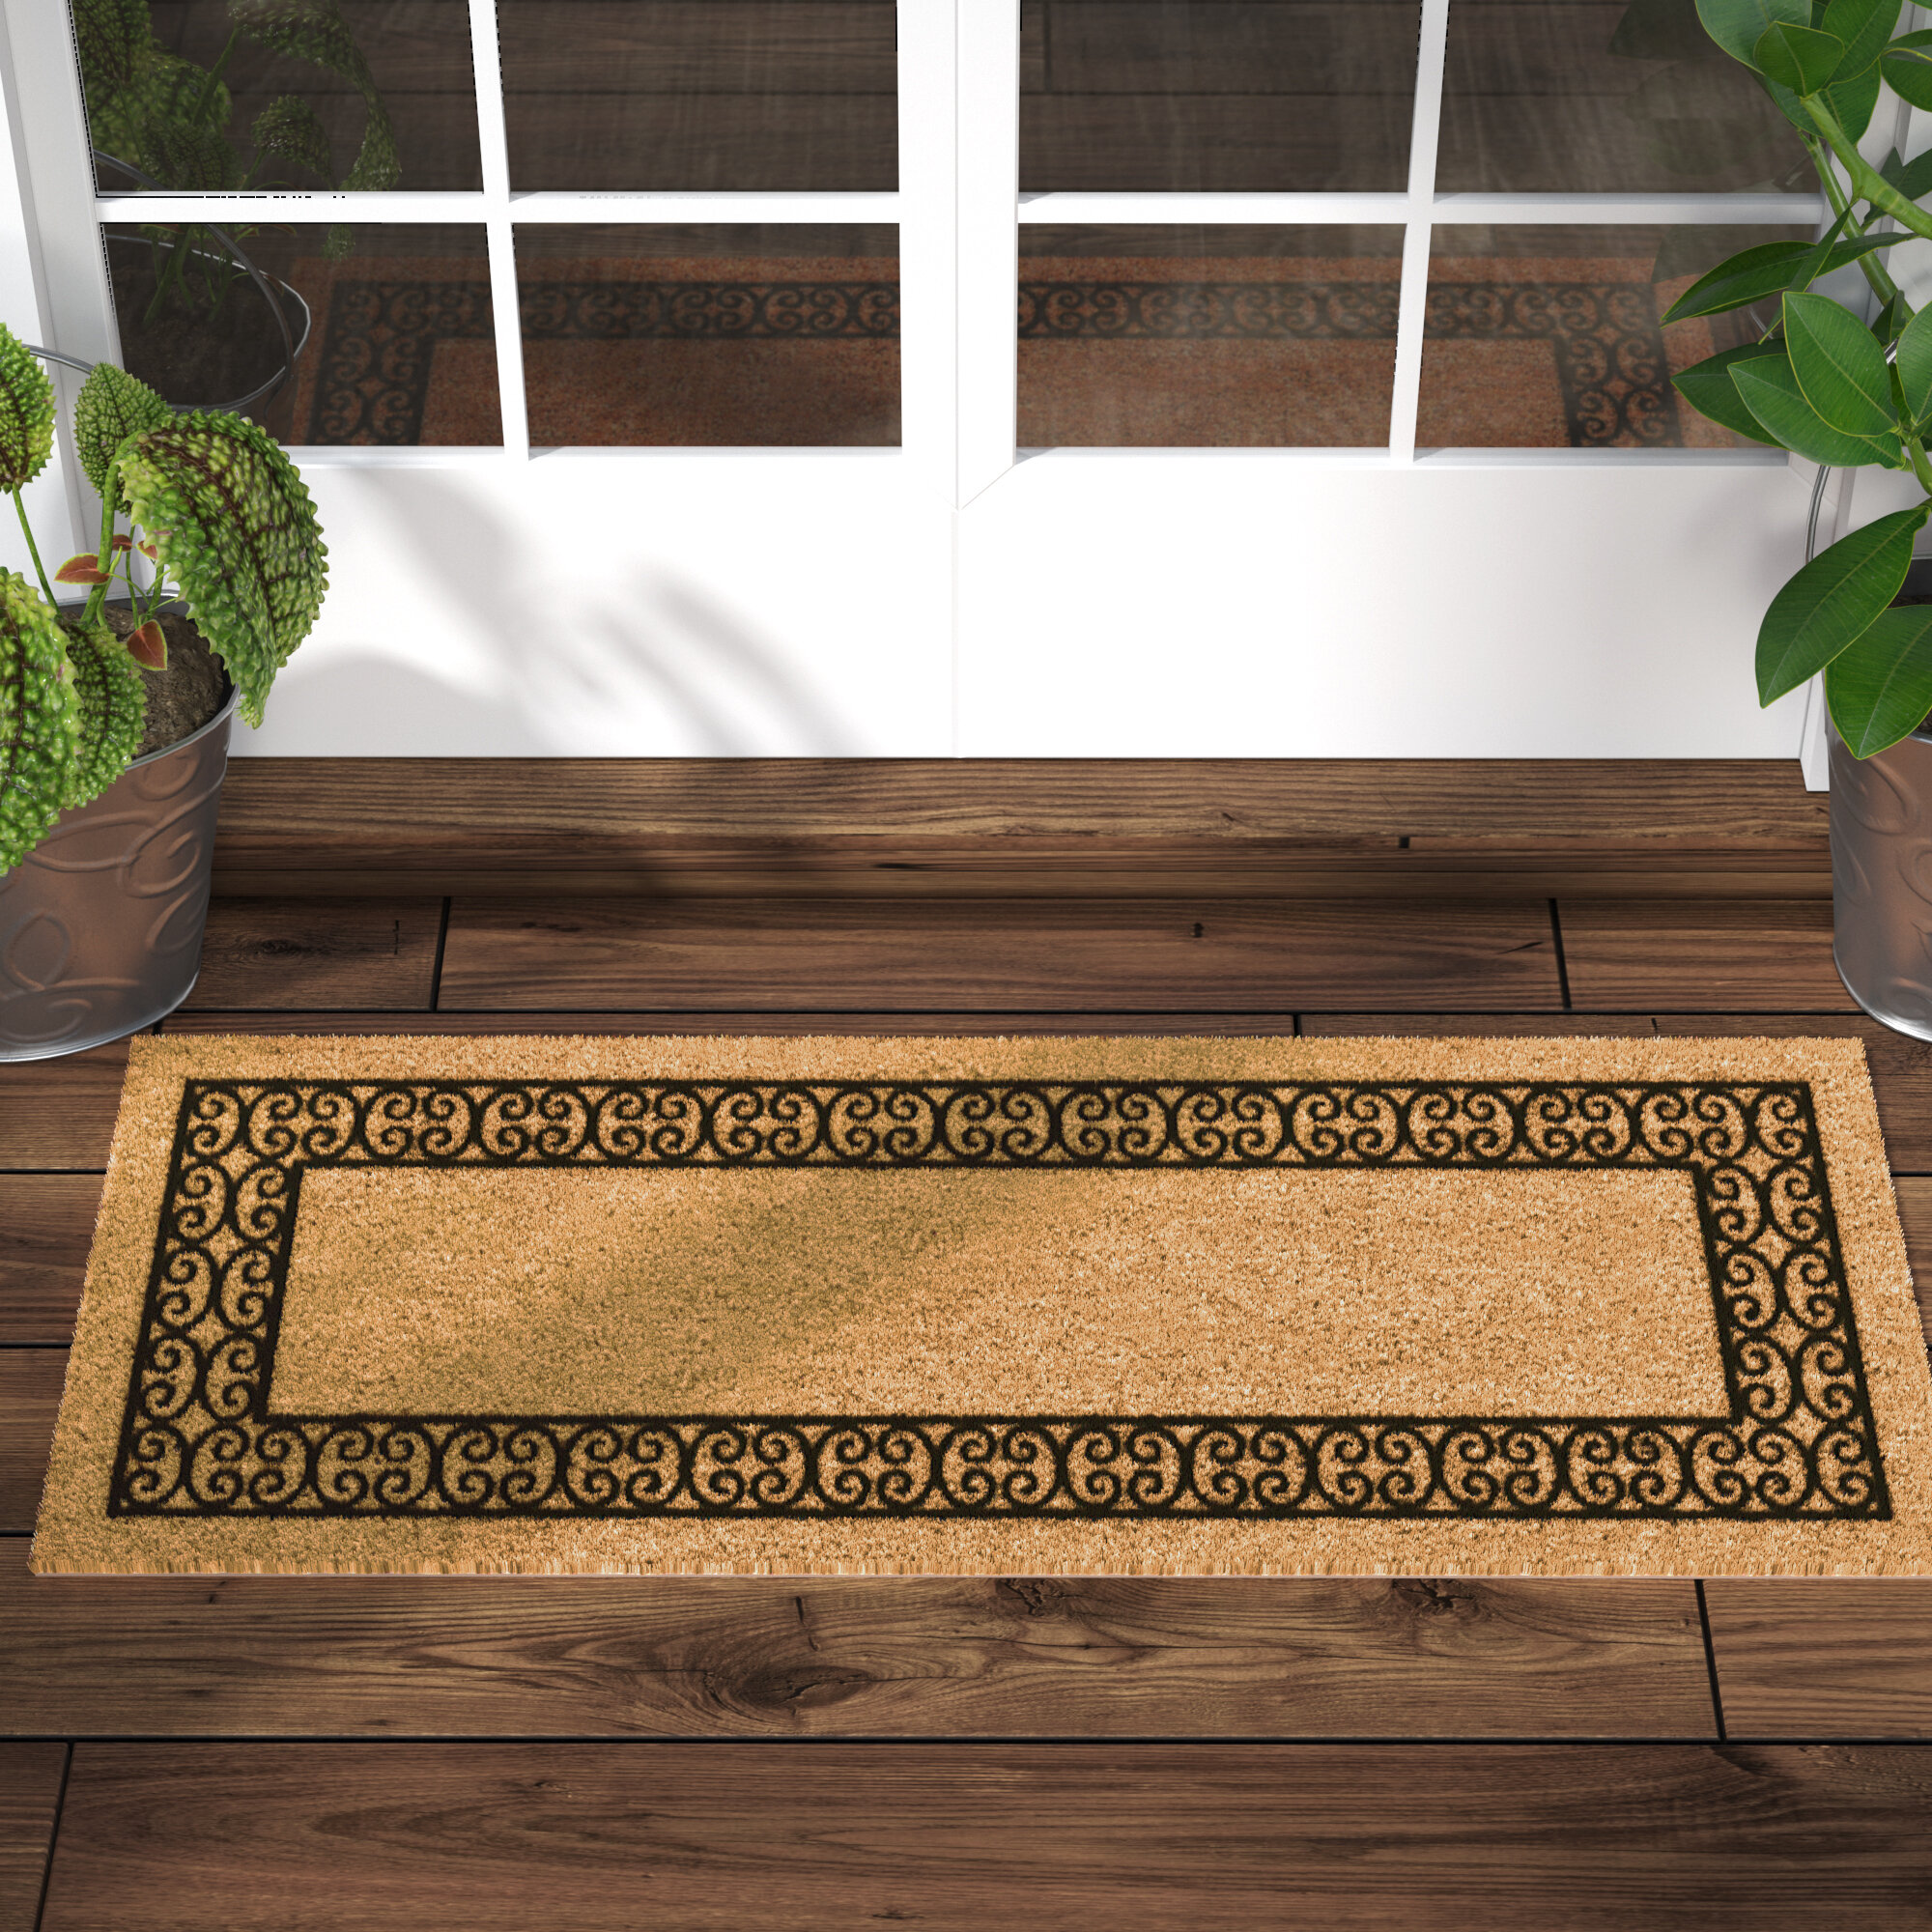 door uk exterior mats extra reviews double doormat mat outstanding coir large best doormats front a doors cod cape charming wide outdoor